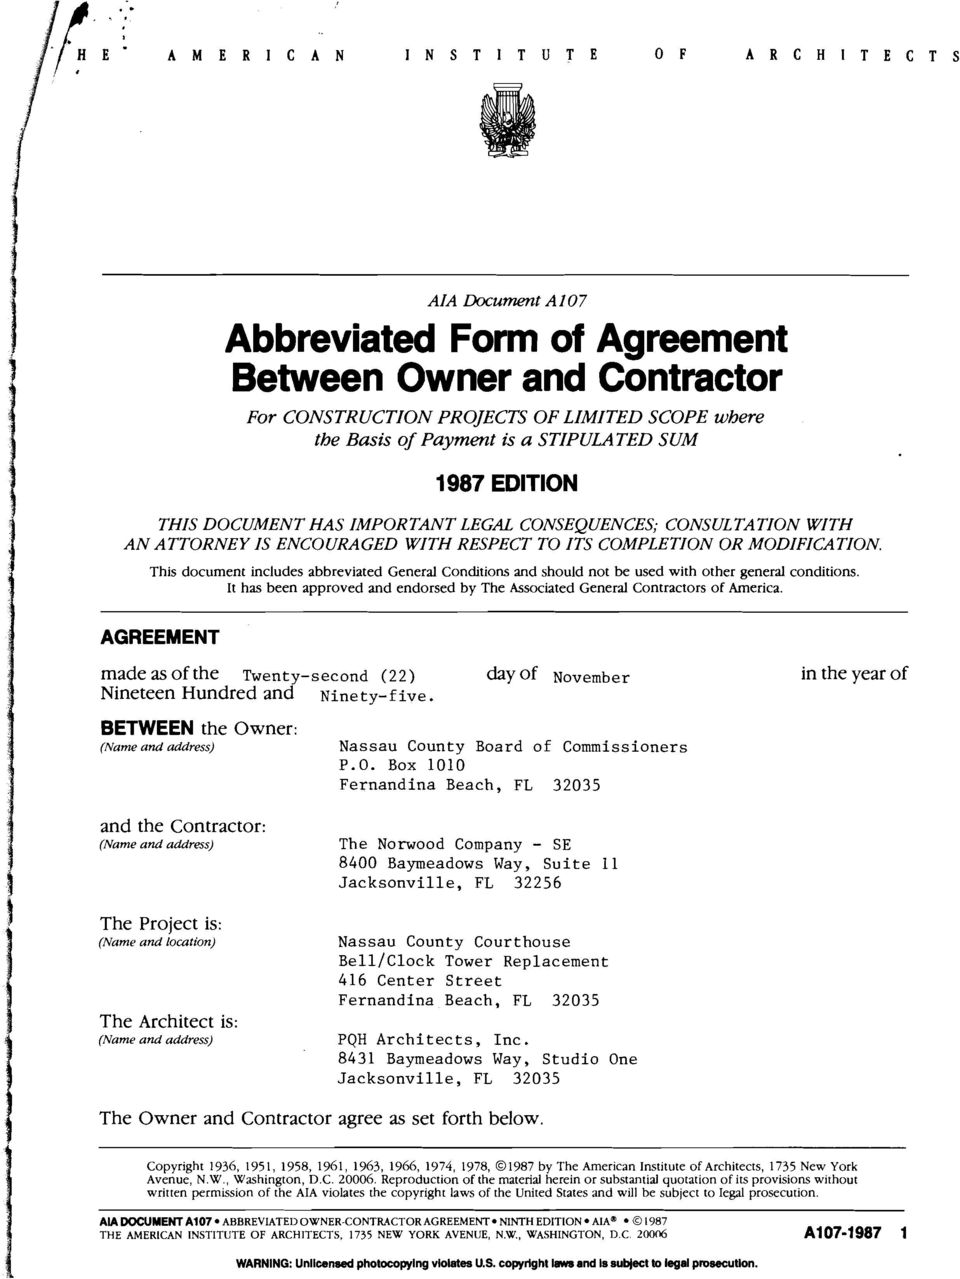 This document includes abbreviated General Conditions and should not be used with other general conditions. It has been approved and endorsed by The Associated General Contractors of America.